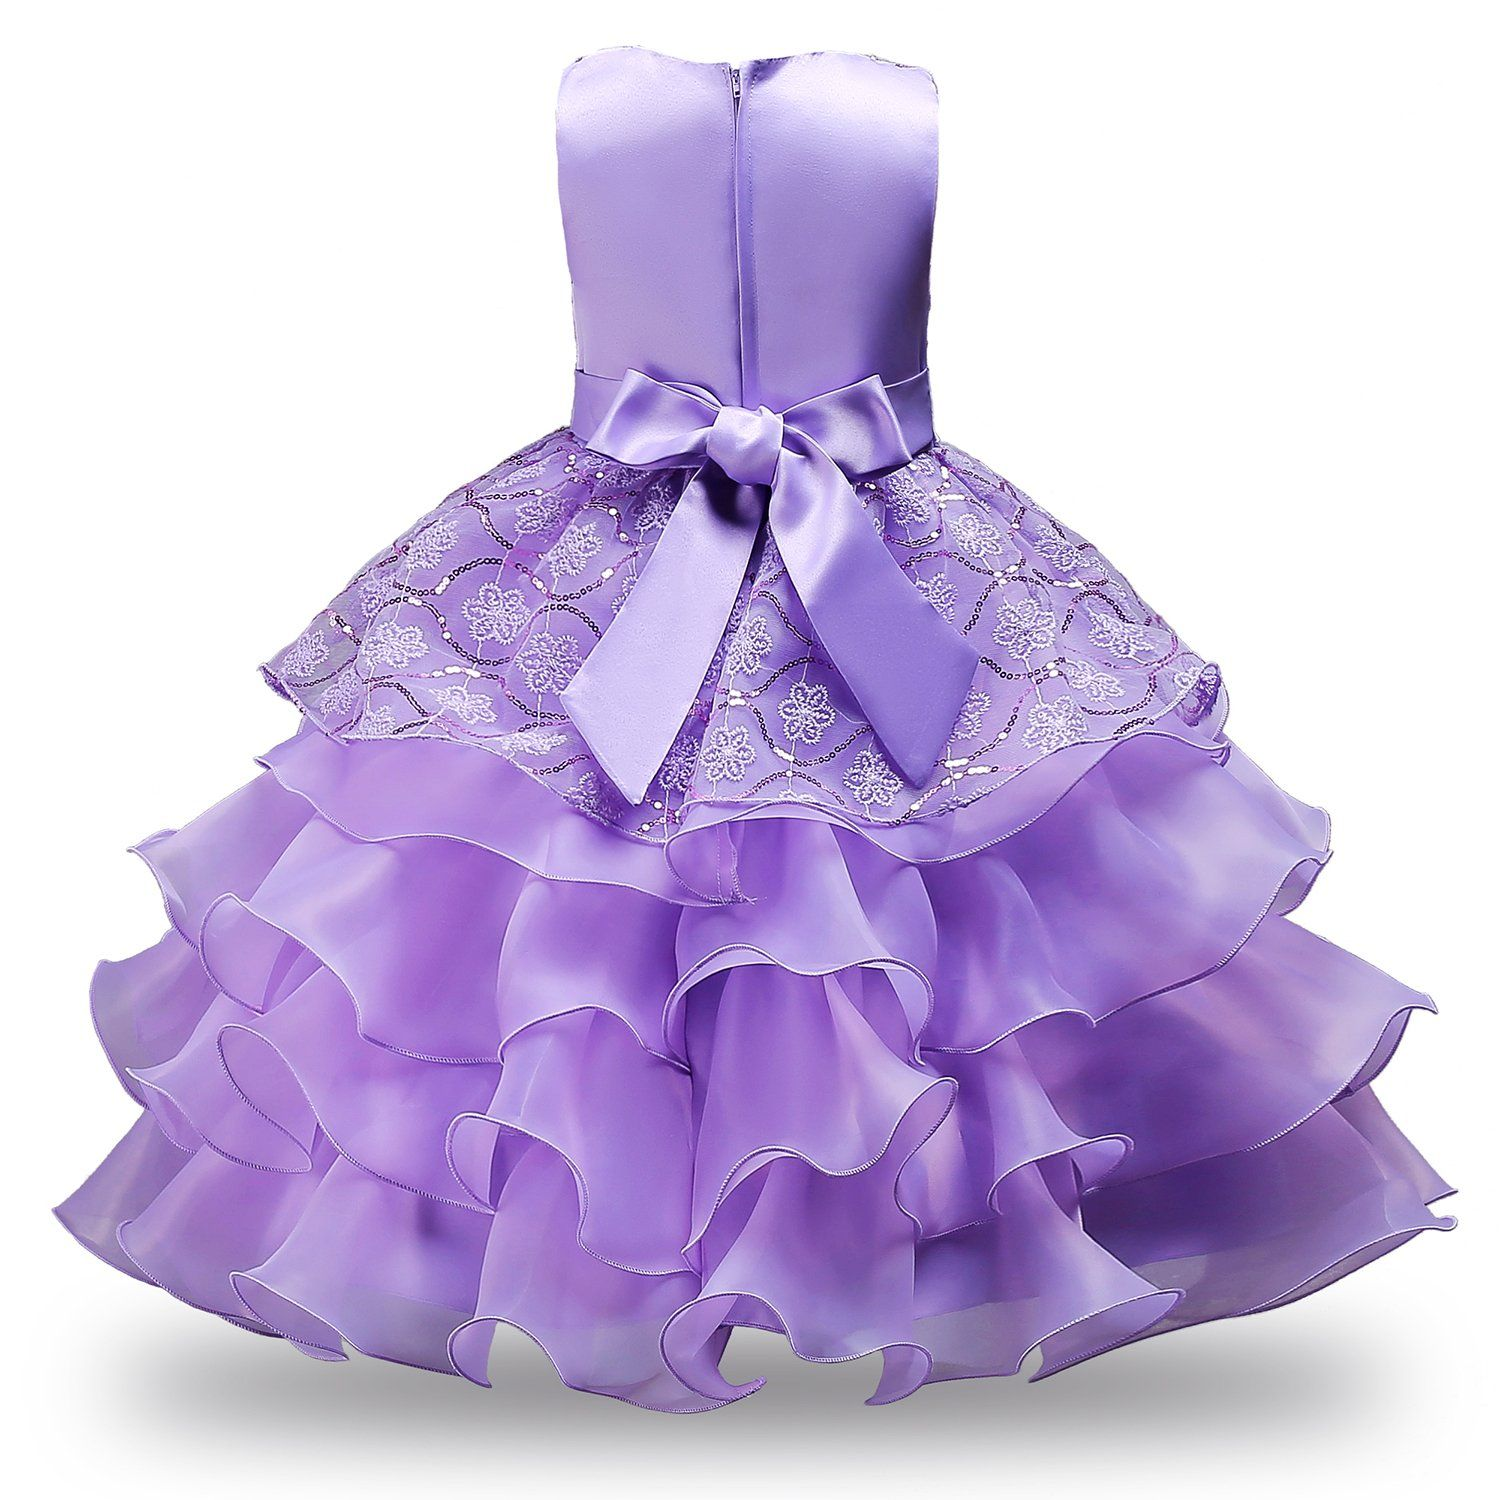 Jerrisapparel Girls Ruffles Embroidered Sequined Pageant Flower Wedding Dress 4t Purple 1 For More Inf Dresses Wedding Dresses Wedding Dresses With Flowers [ 1500 x 1500 Pixel ]